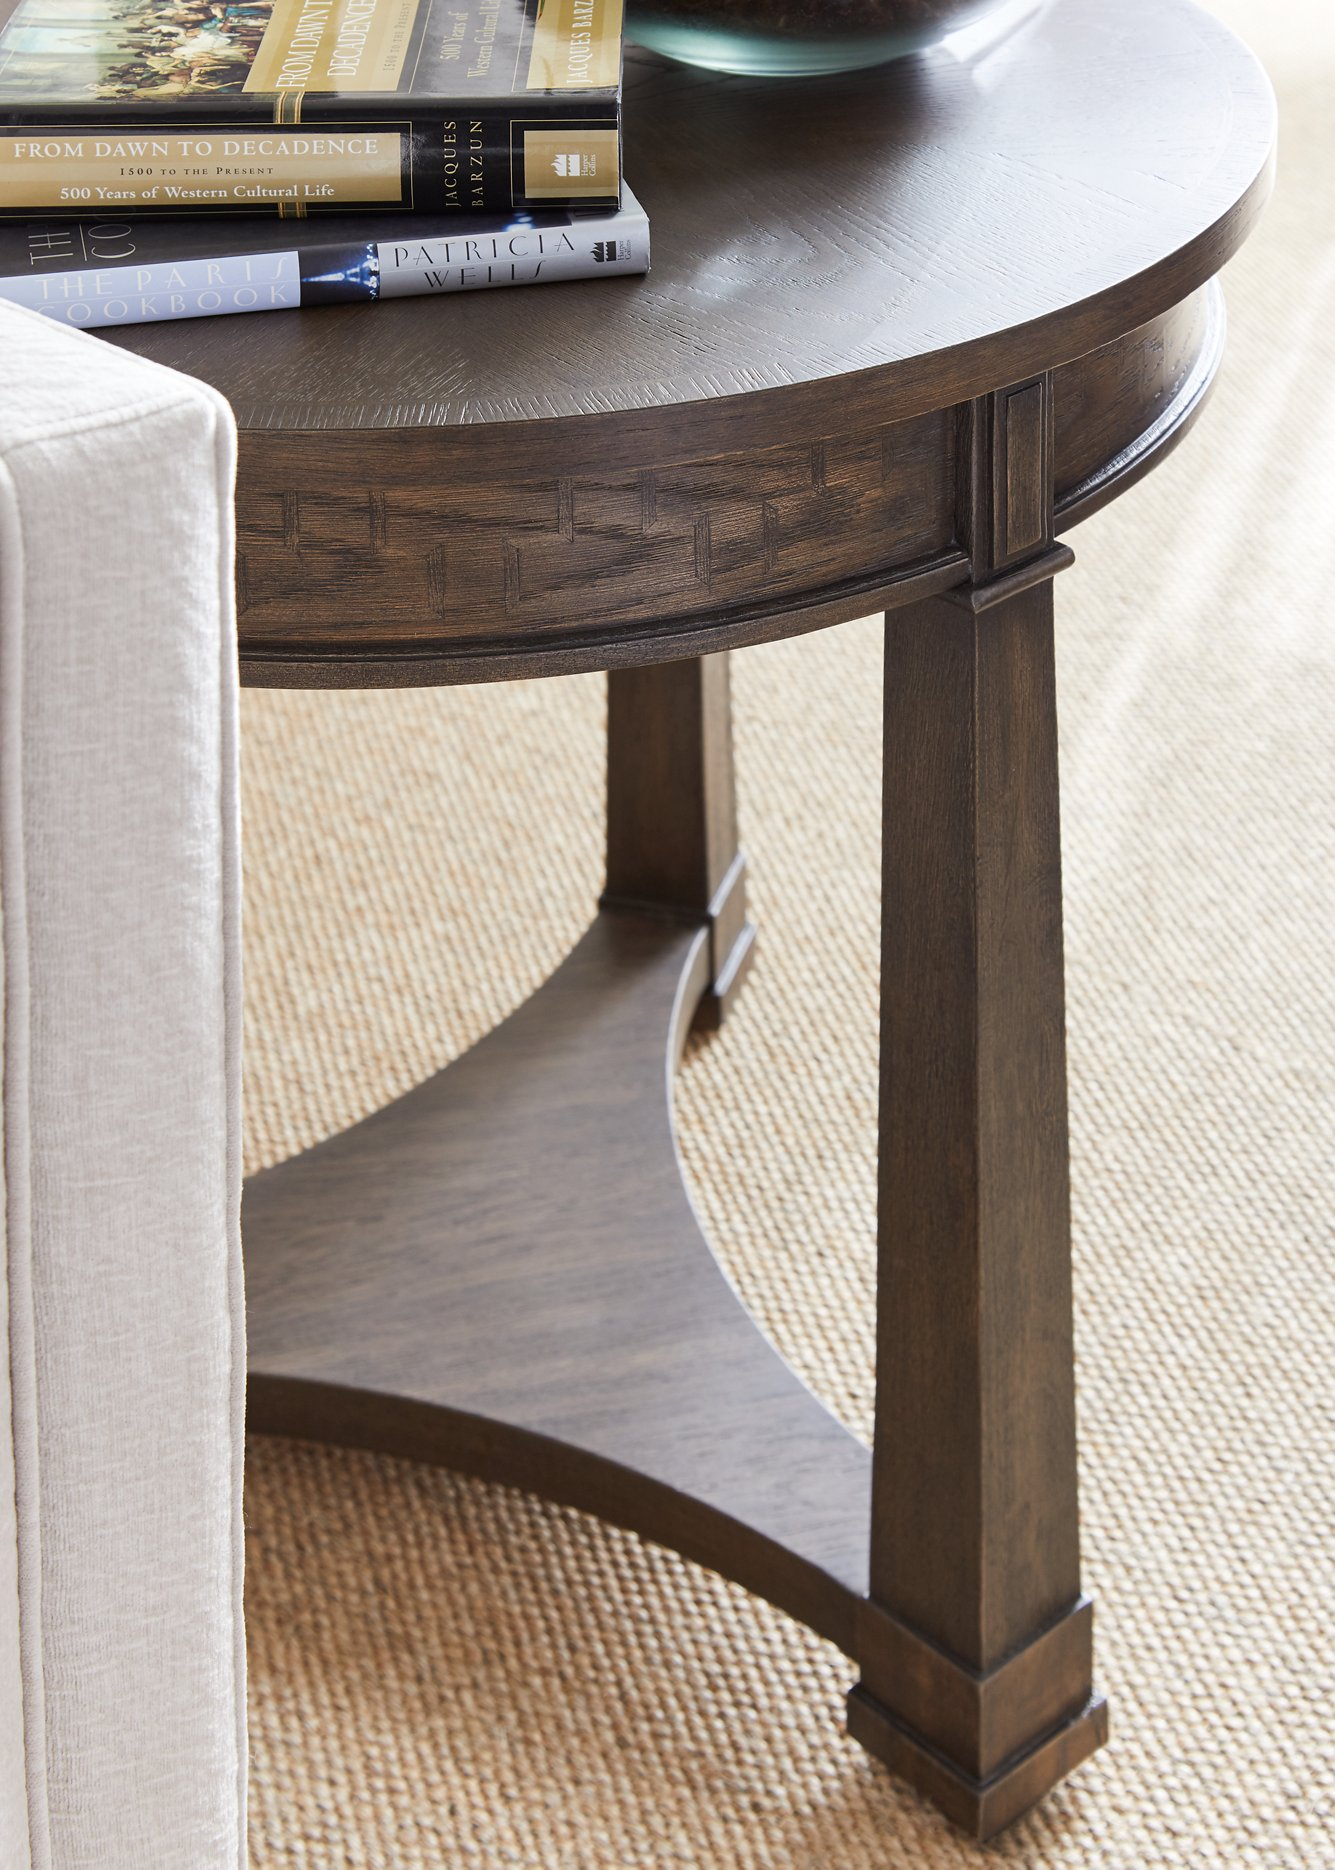 wethersfield estate lamp table granite celebrate home detail modern farmhouse accent stanley furniture living room end wood urban simple ikea storage shelf unit unicorn leather